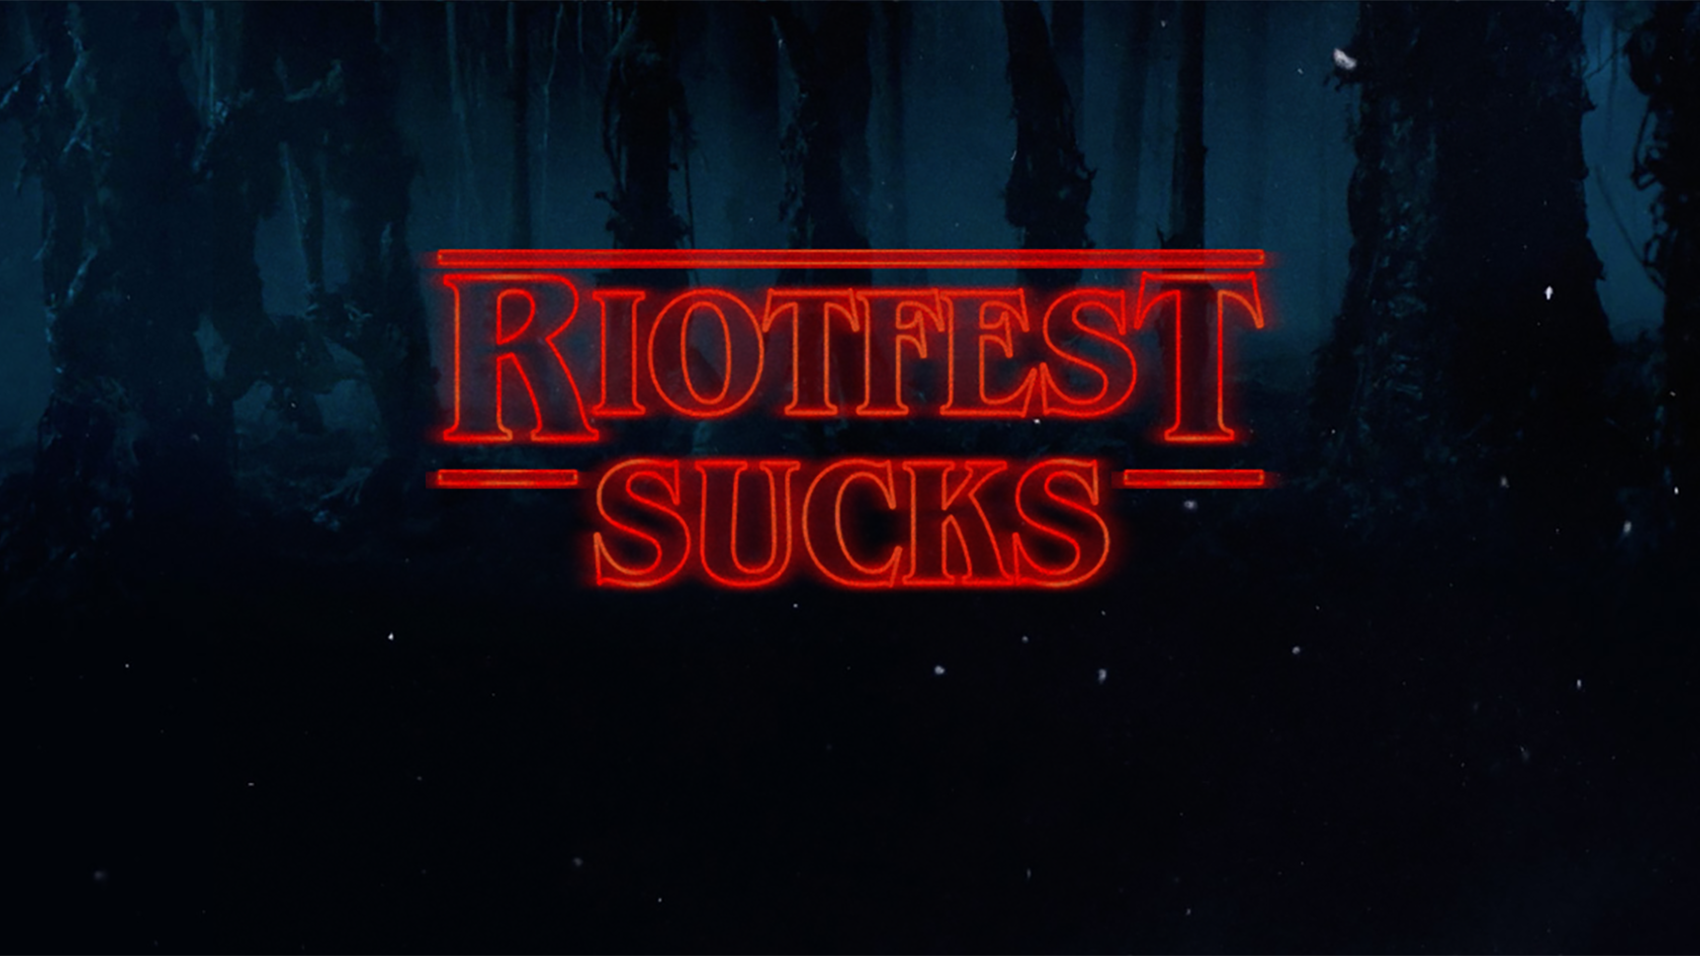 riotfest-sucks stranger thigns